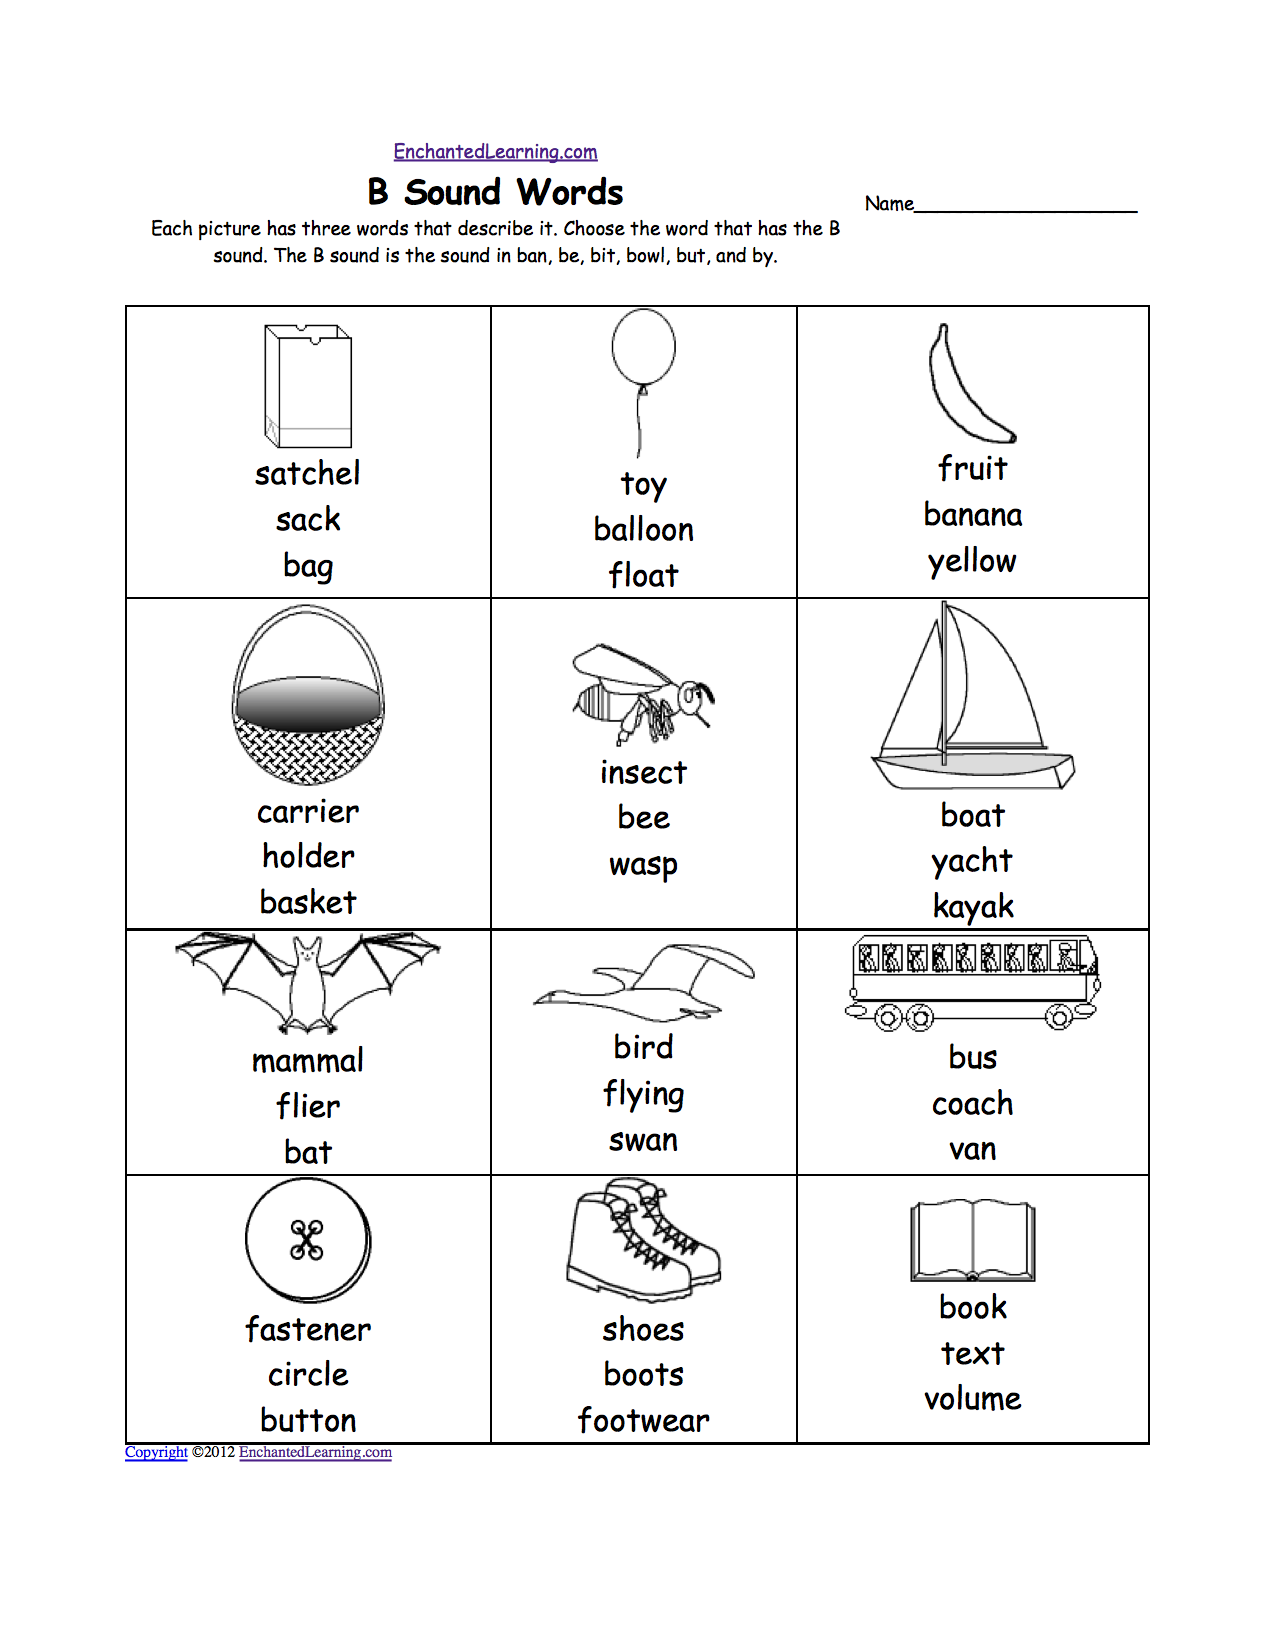 Weirdmailus  Pleasant Phonics Worksheets Multiple Choice Worksheets To Print  With Fetching Quotbquot Sound Phonics Worksheet Multiple Choice Each Picture Has Three Words That Describe It Choose The Word That Has A Quotbquot Sound The Quotbquot Sound Is The Sound  With Easy On The Eye Multiplying Fraction Worksheets Also Writing Expressions And Equations Worksheet In Addition Pre Application Worksheet Css And Lewis Dot Worksheet As Well As Measuring Cm And Mm Worksheet Additionally Fractions Worksheets Pdf From Enchantedlearningcom With Weirdmailus  Fetching Phonics Worksheets Multiple Choice Worksheets To Print  With Easy On The Eye Quotbquot Sound Phonics Worksheet Multiple Choice Each Picture Has Three Words That Describe It Choose The Word That Has A Quotbquot Sound The Quotbquot Sound Is The Sound  And Pleasant Multiplying Fraction Worksheets Also Writing Expressions And Equations Worksheet In Addition Pre Application Worksheet Css From Enchantedlearningcom